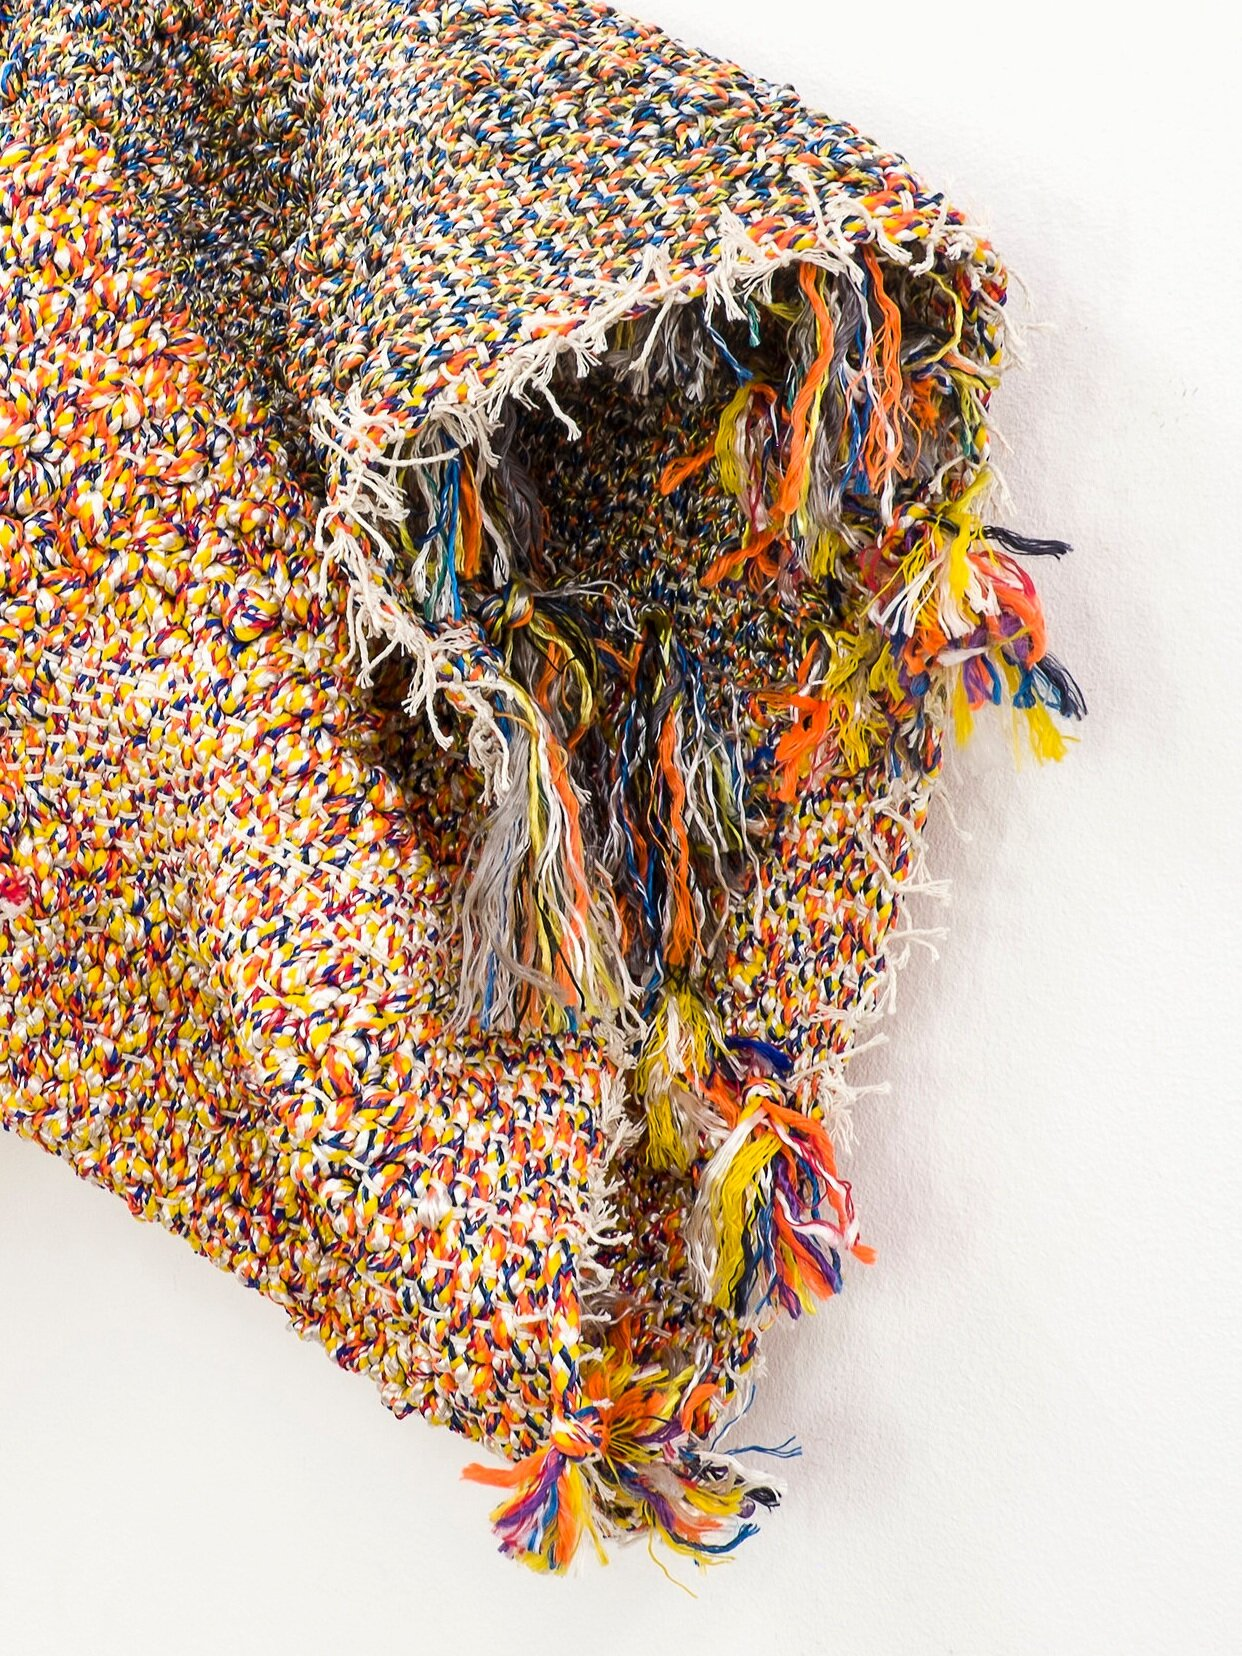 Conduit I (Detail)   Igshaan Adams  2018  Braided nylon rope and cotton twine